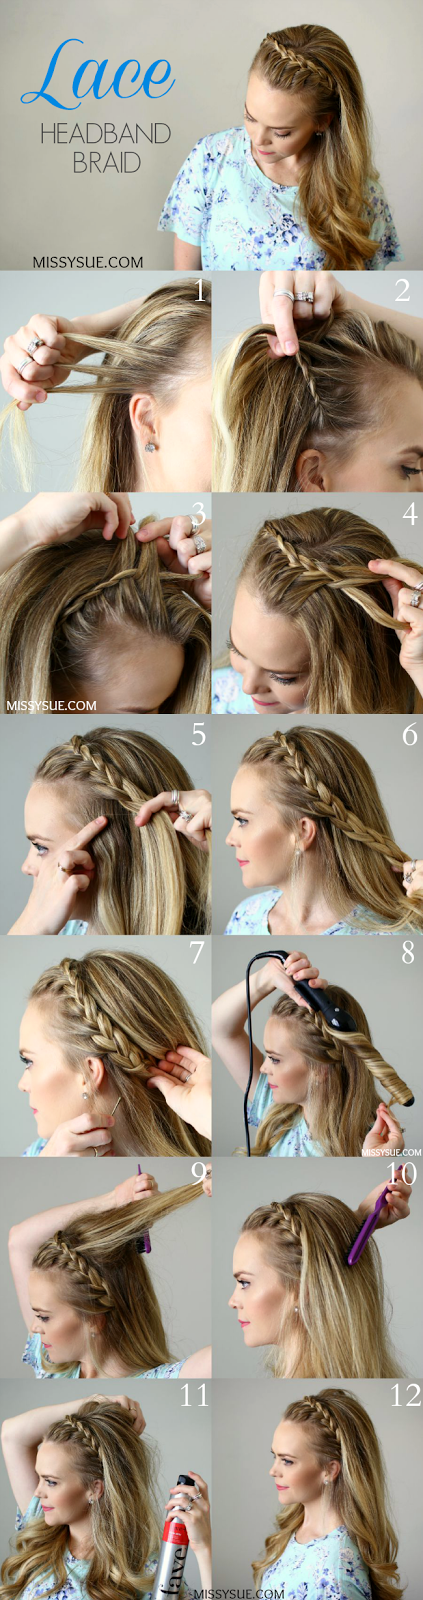 http://missysue.com/2015/08/lace-headband-braid/